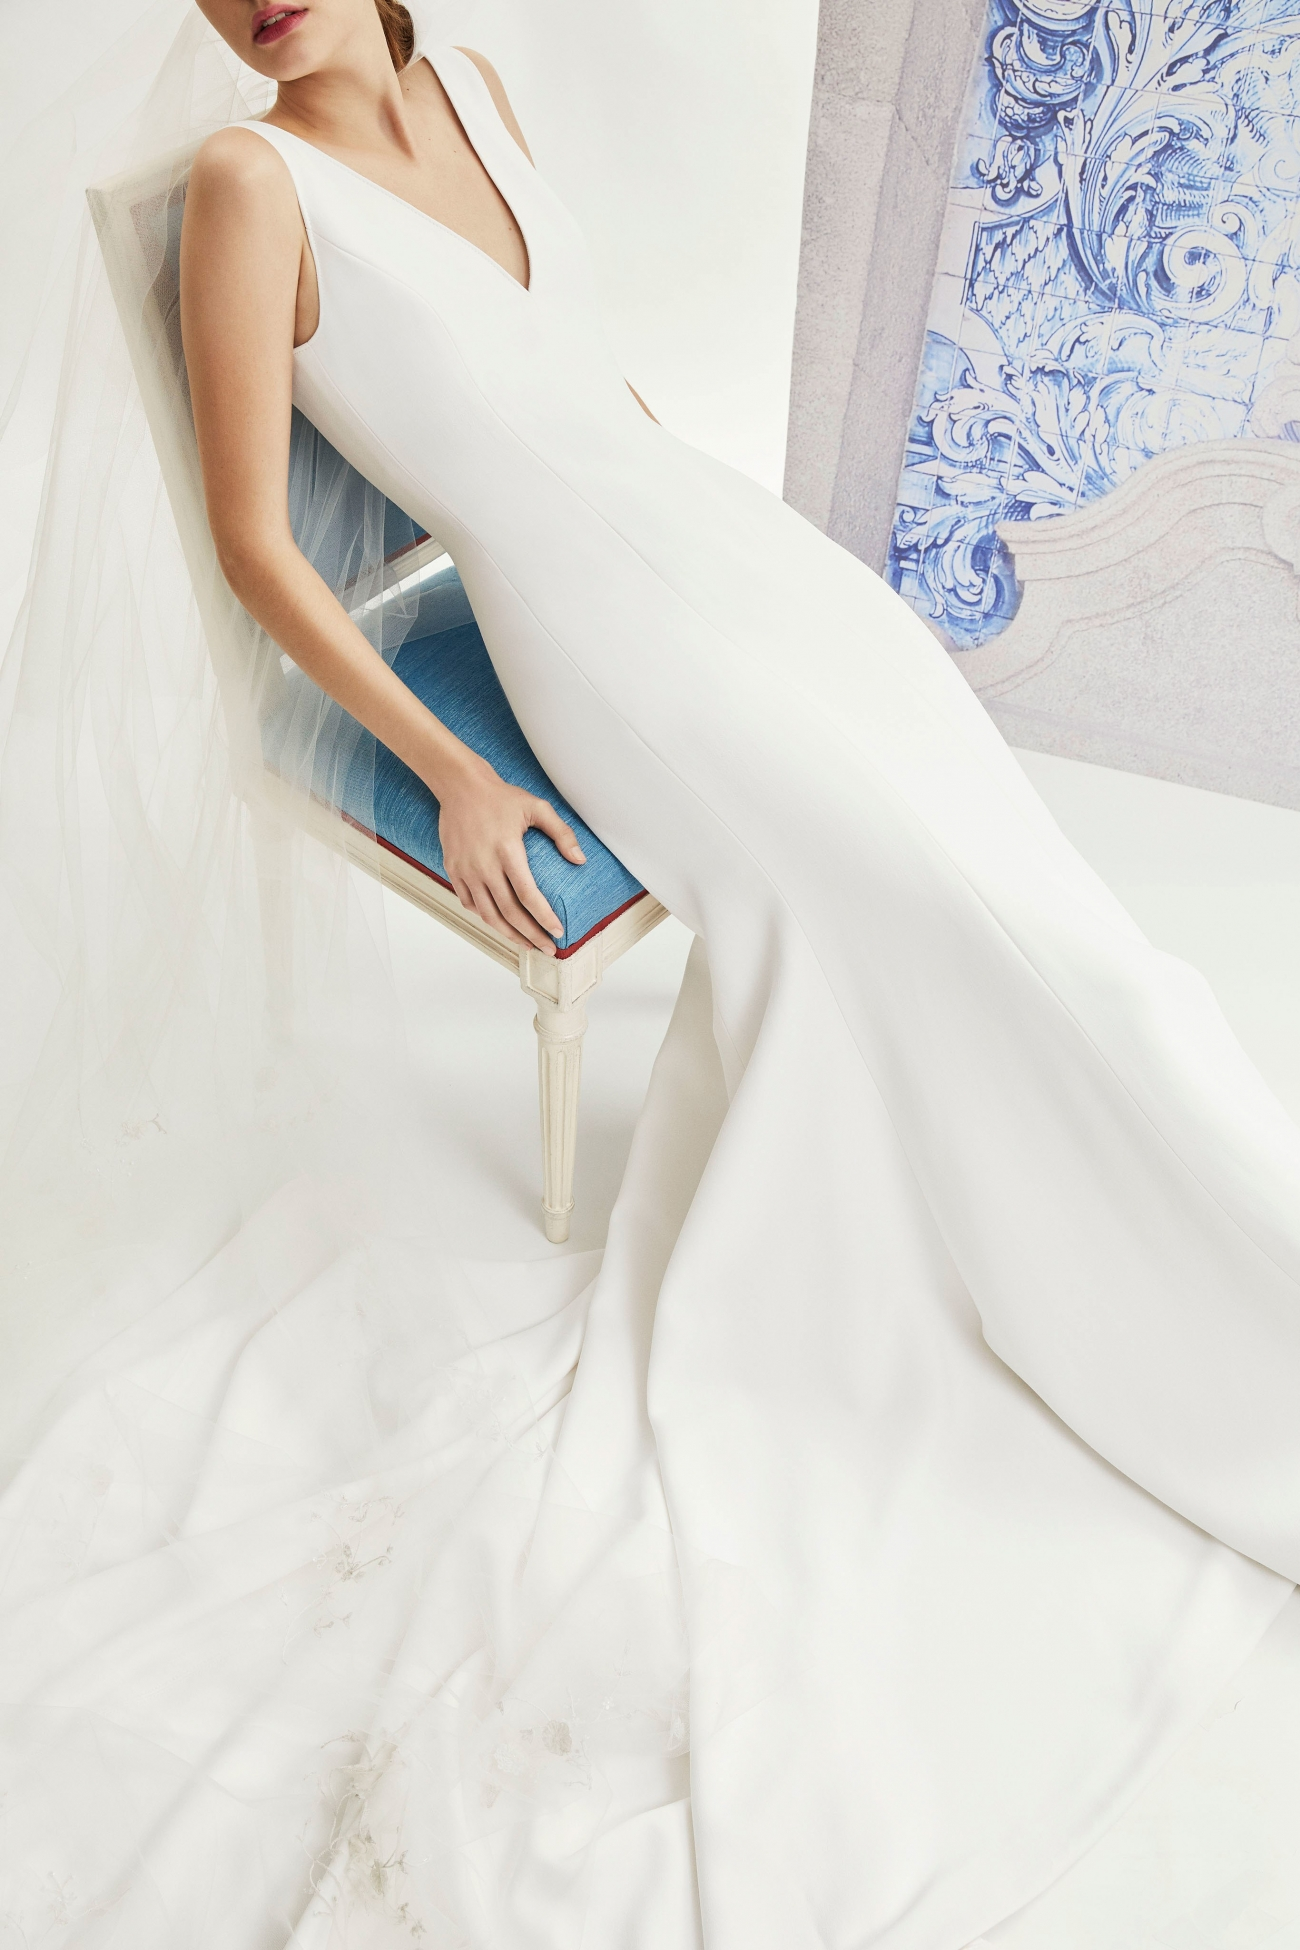 Carolina Herrera Bridal Fall 2019 Ivy